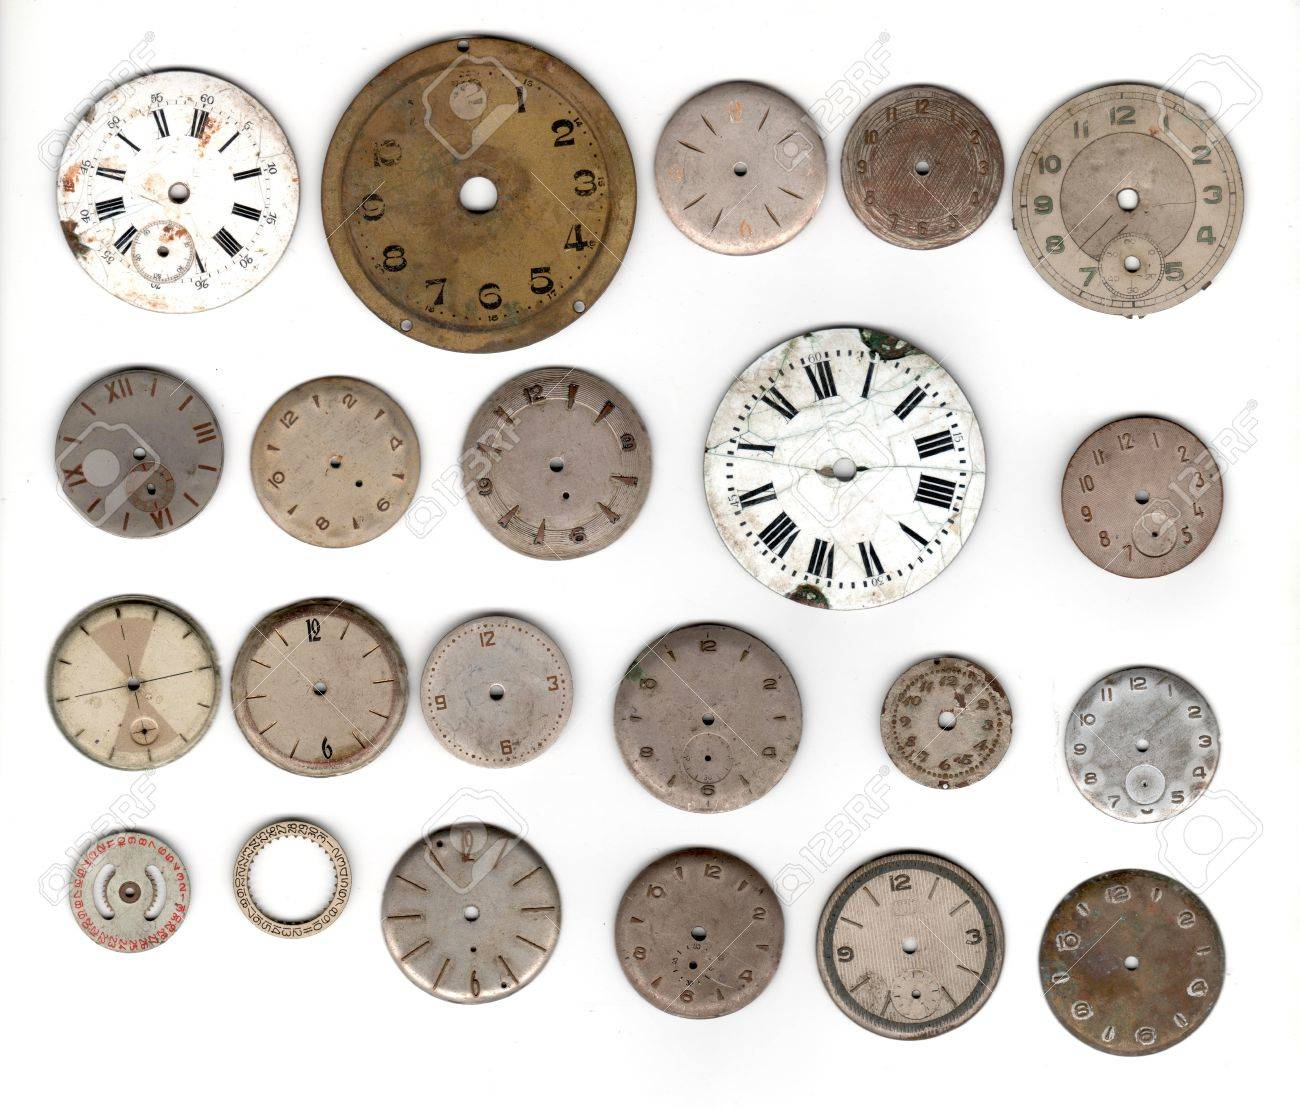 many vintage pocket watch dial only over white background - 8070099